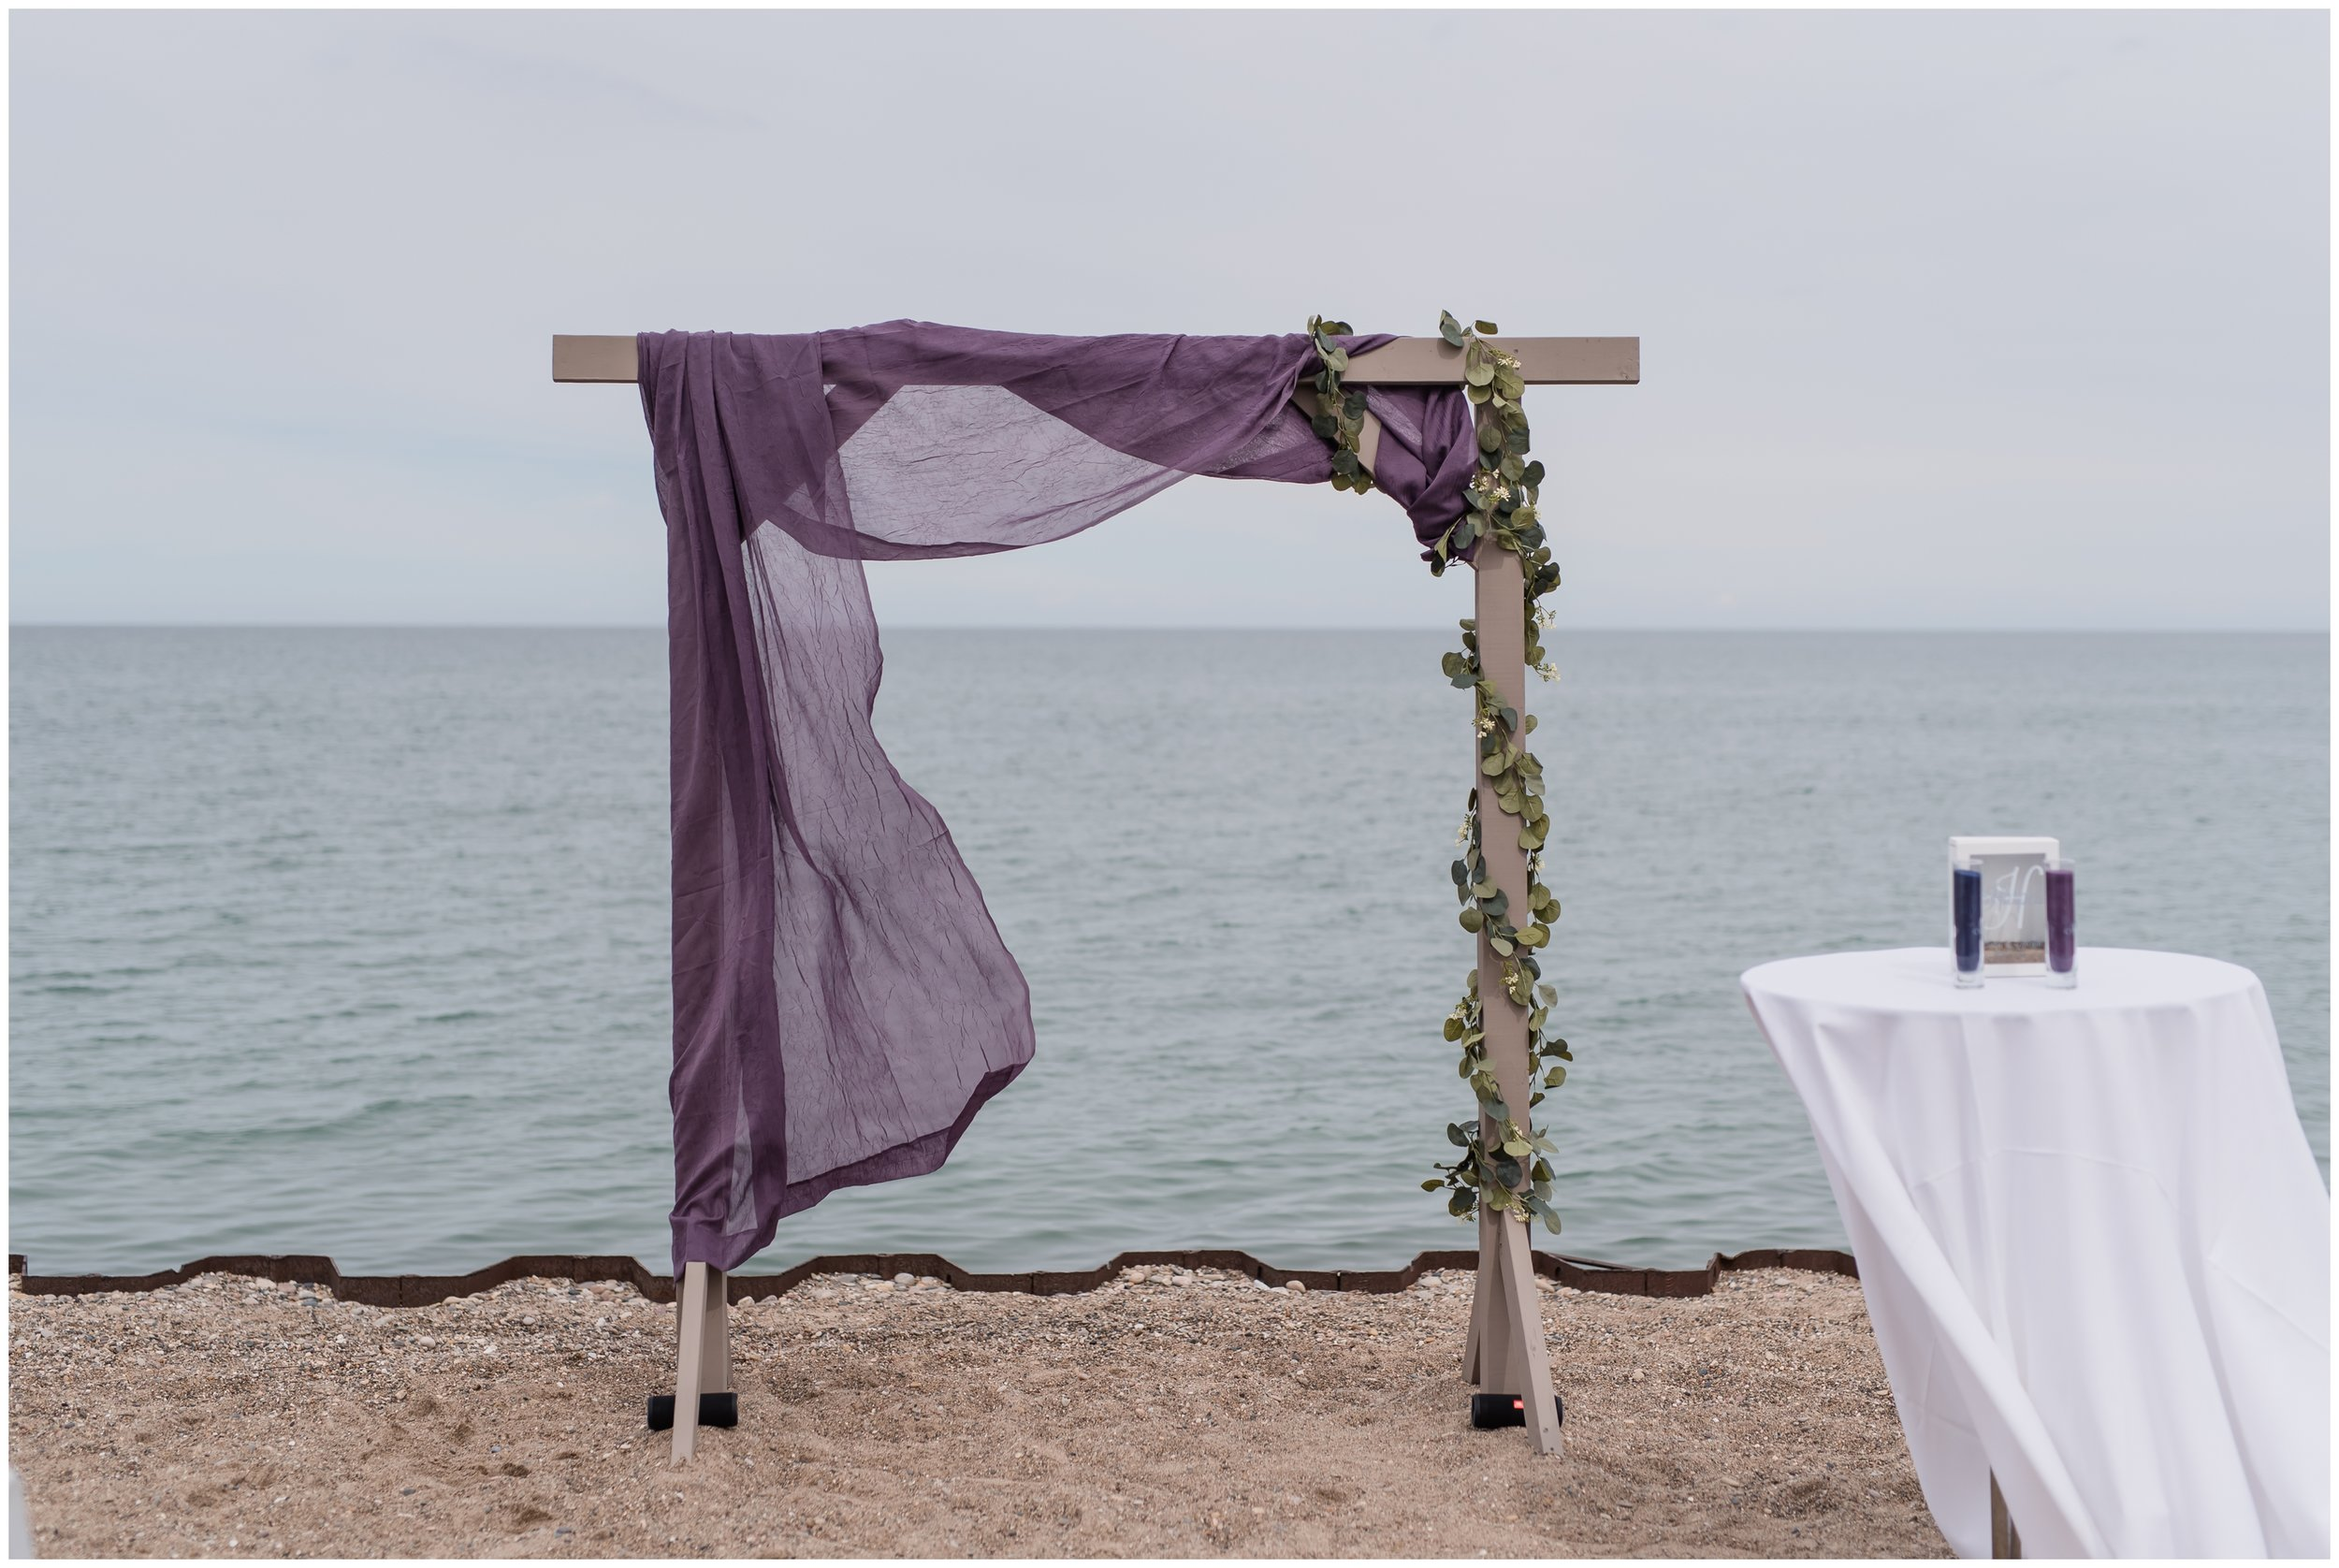 Illinois Beach Resort Zion Summer Wedding Ceremony Arch